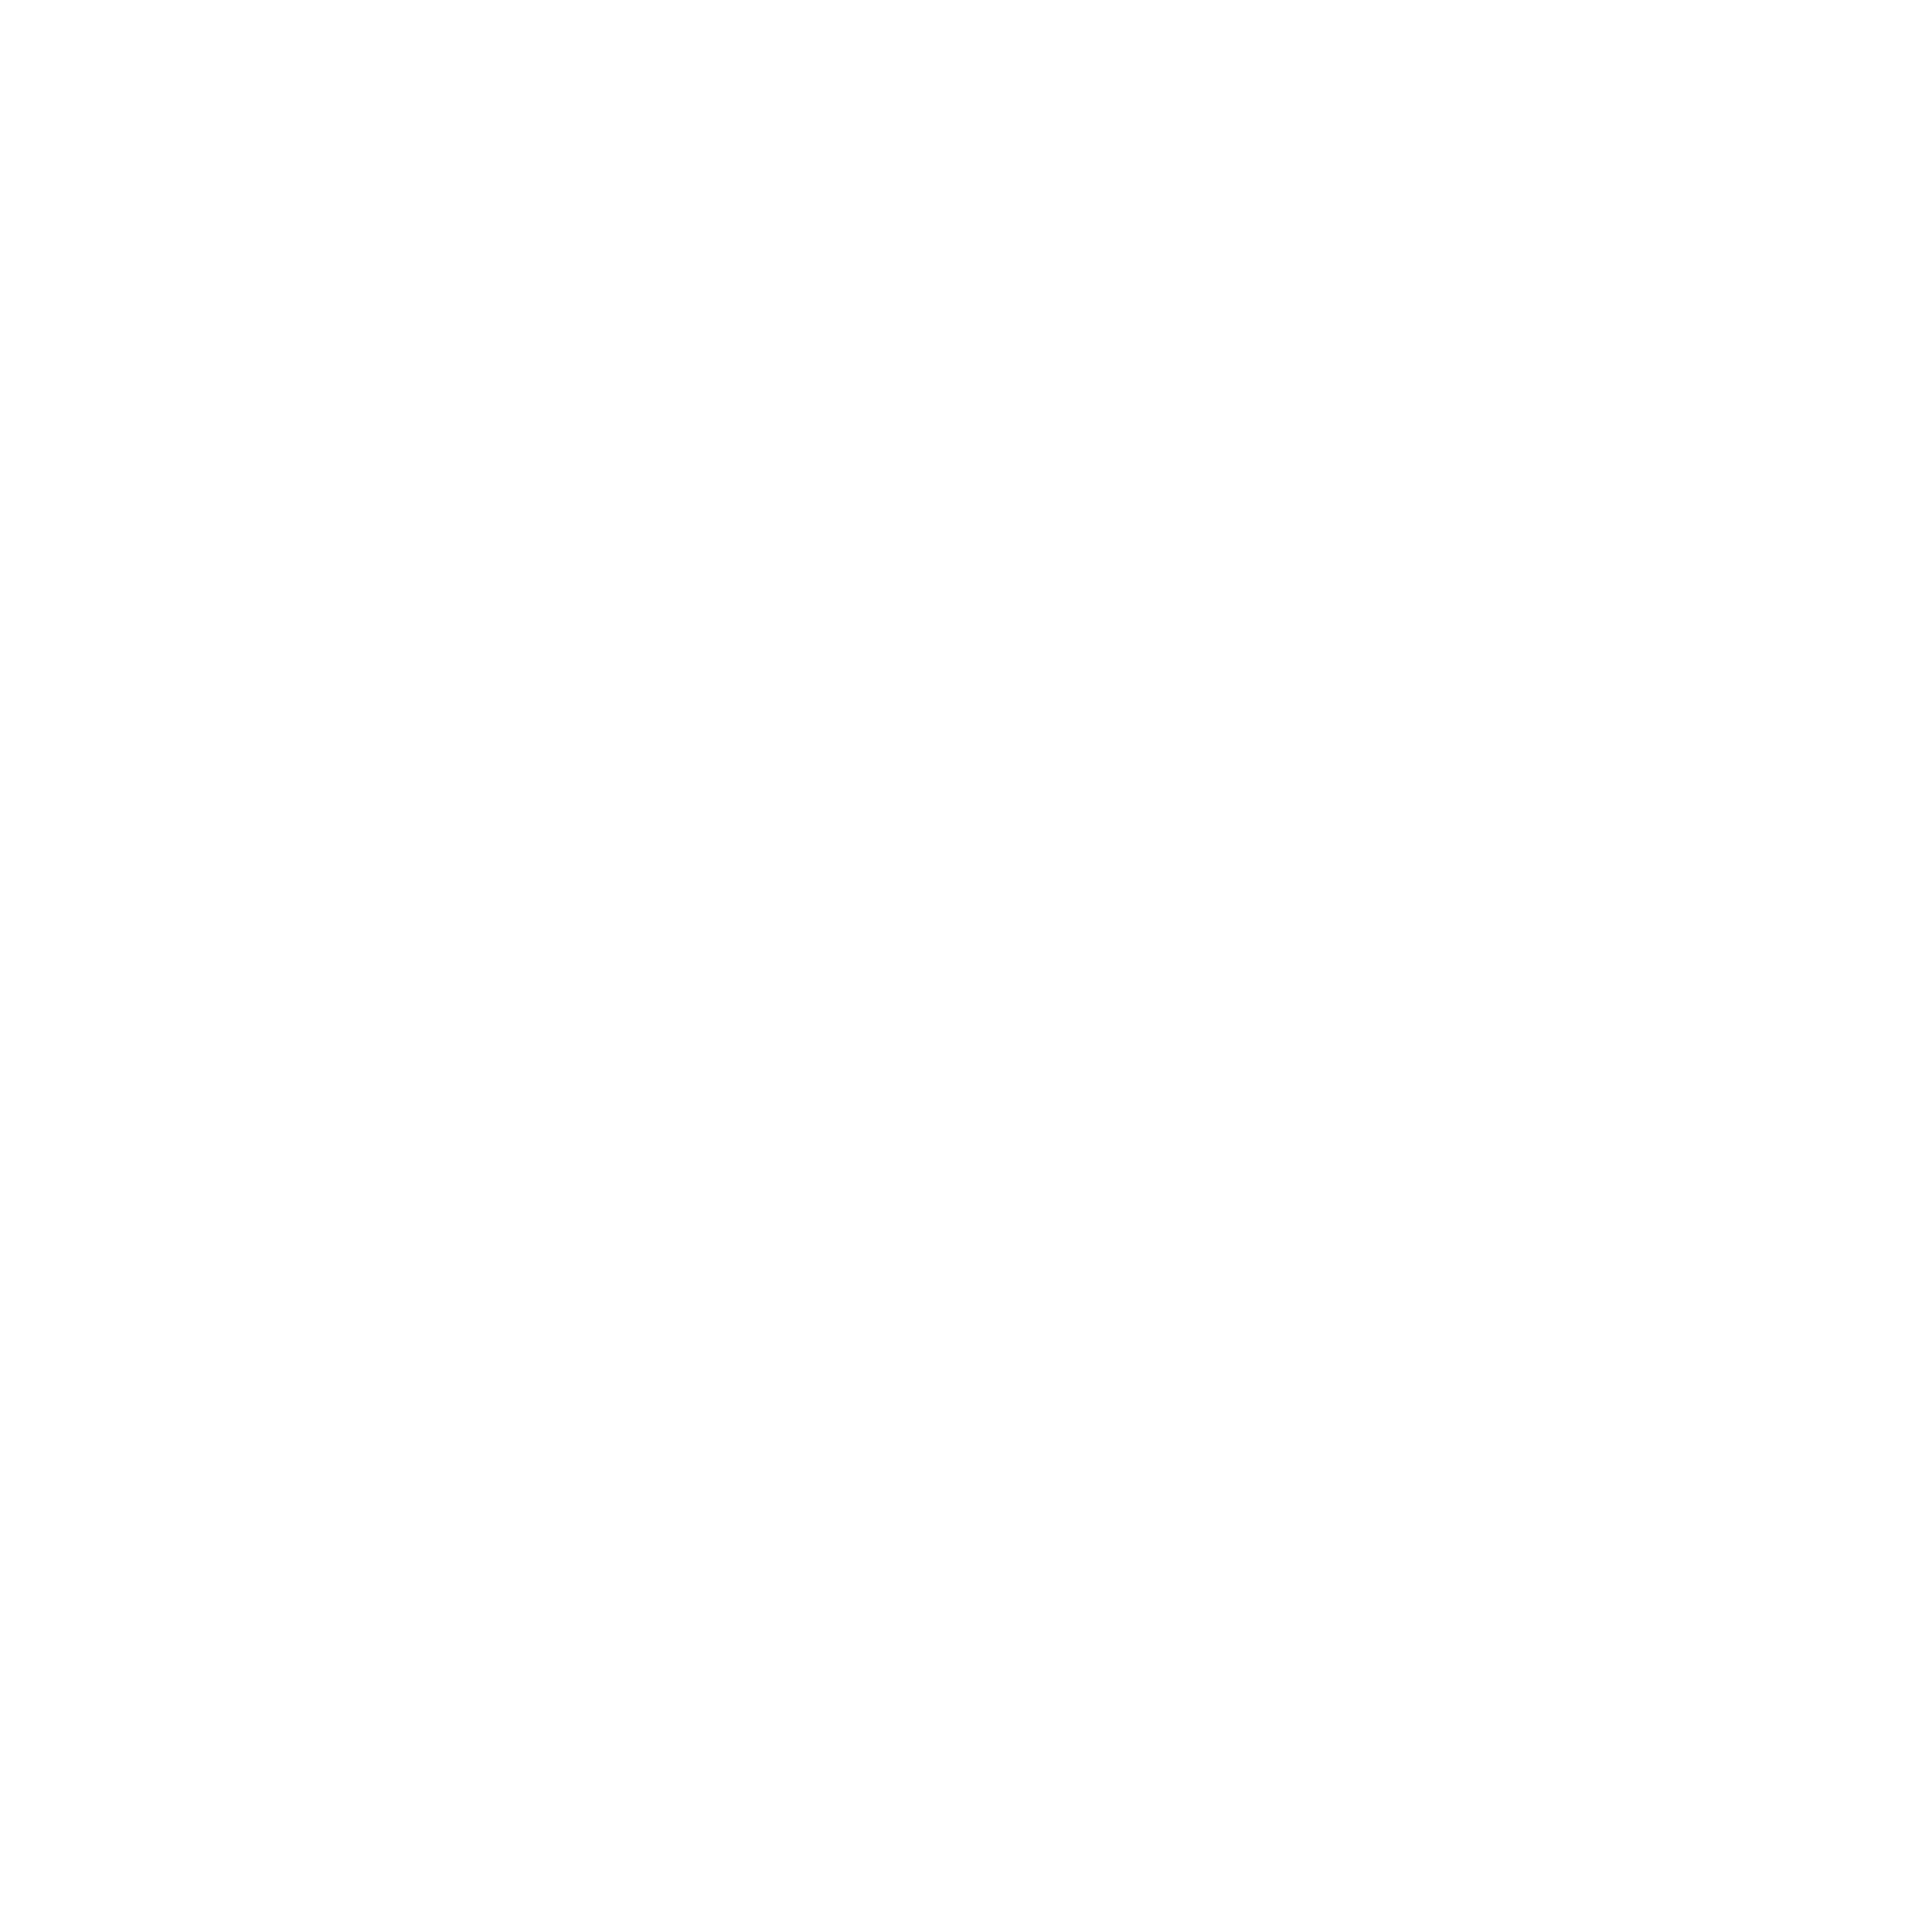 Extended Forms - Experiments in Everyday Carry